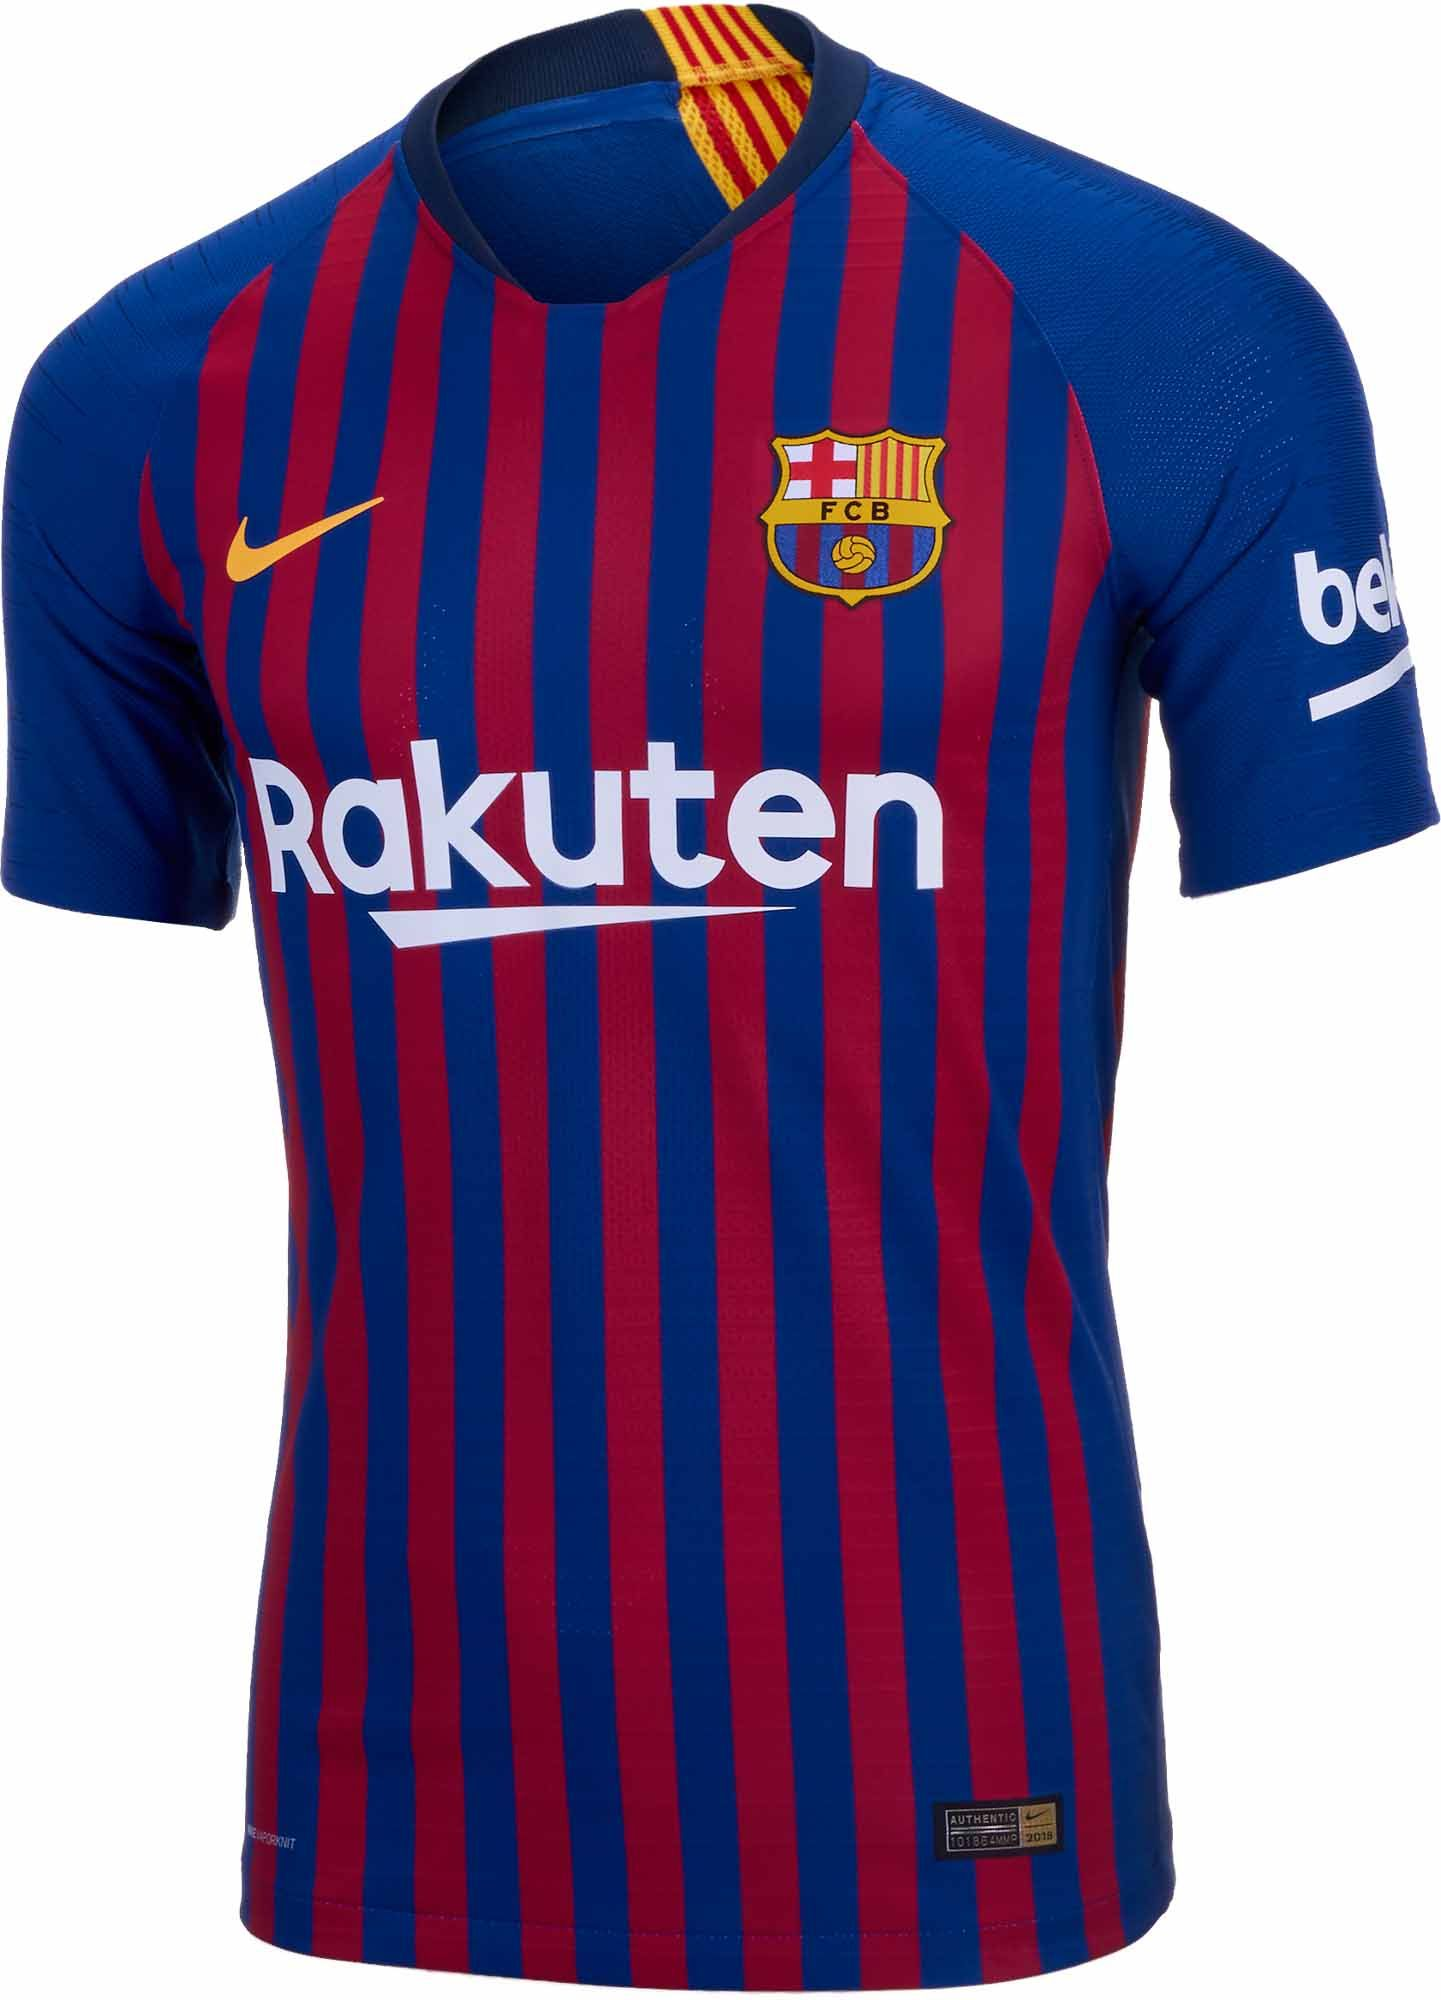 857ed352140 Shop for the 2018/19 Nike Fc Barcelona Match Home Jersey from SoccerPro  right now.